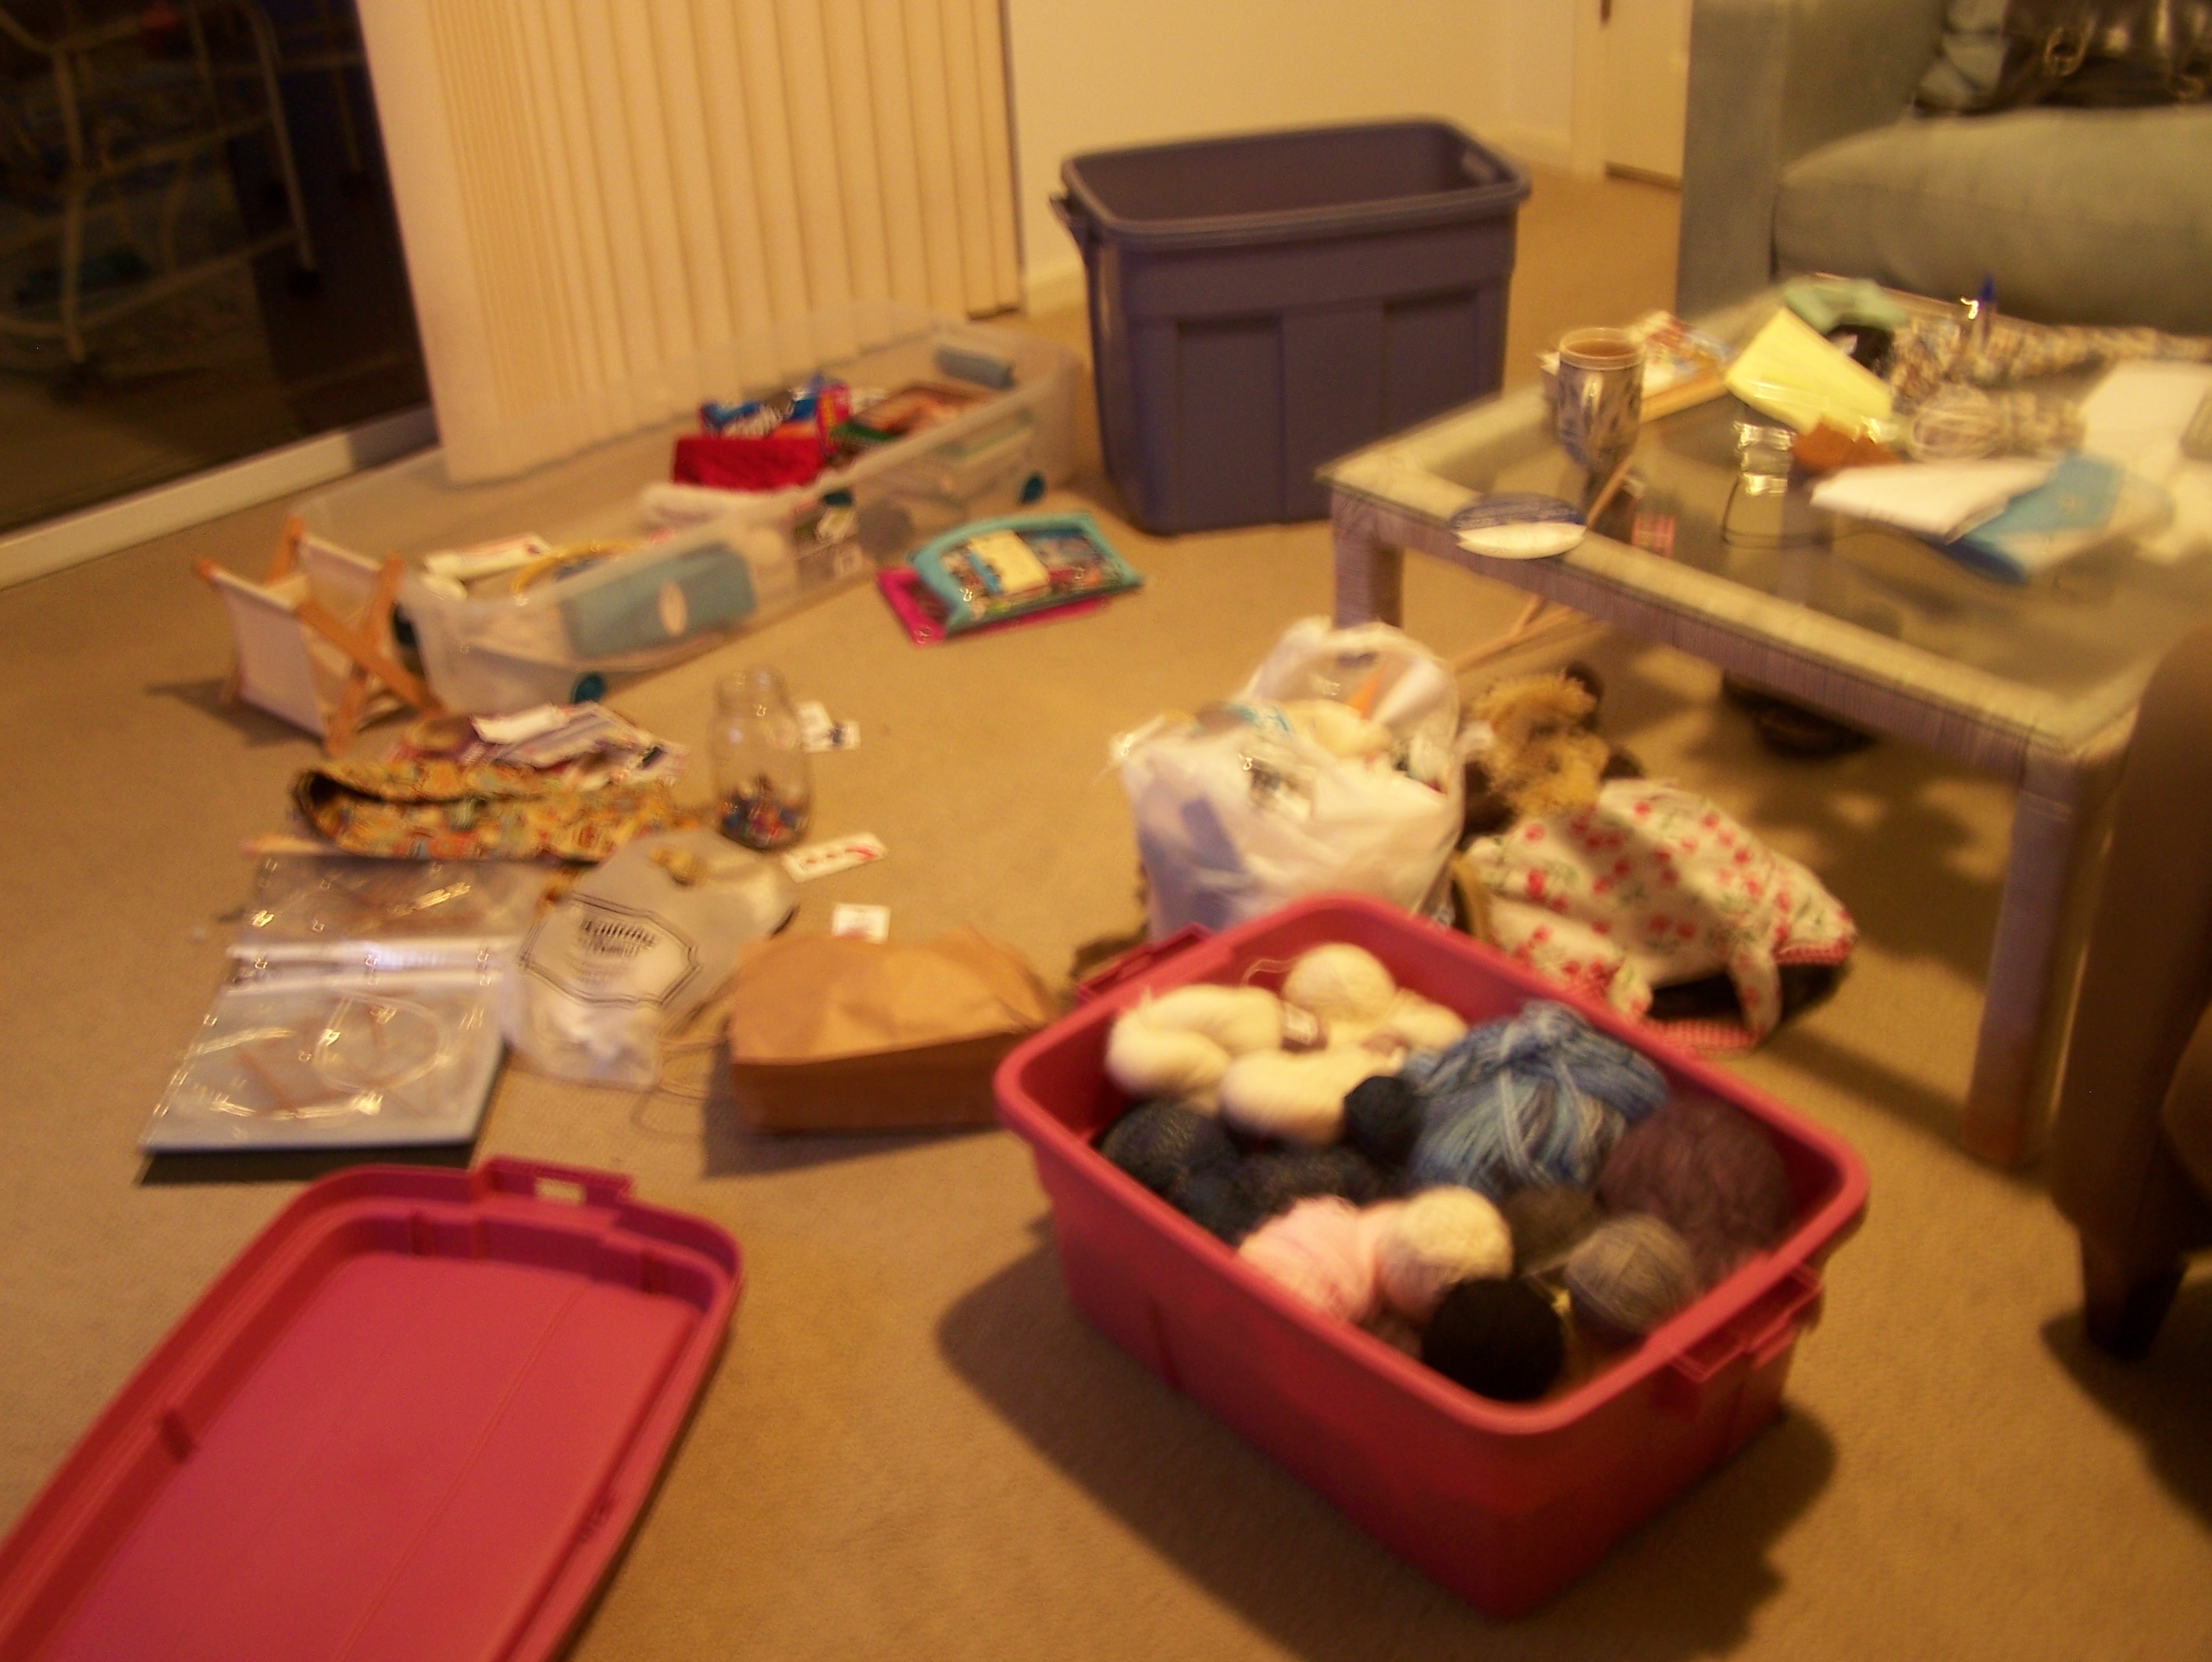 Trying to organize.  This is what taking up knitting really means!